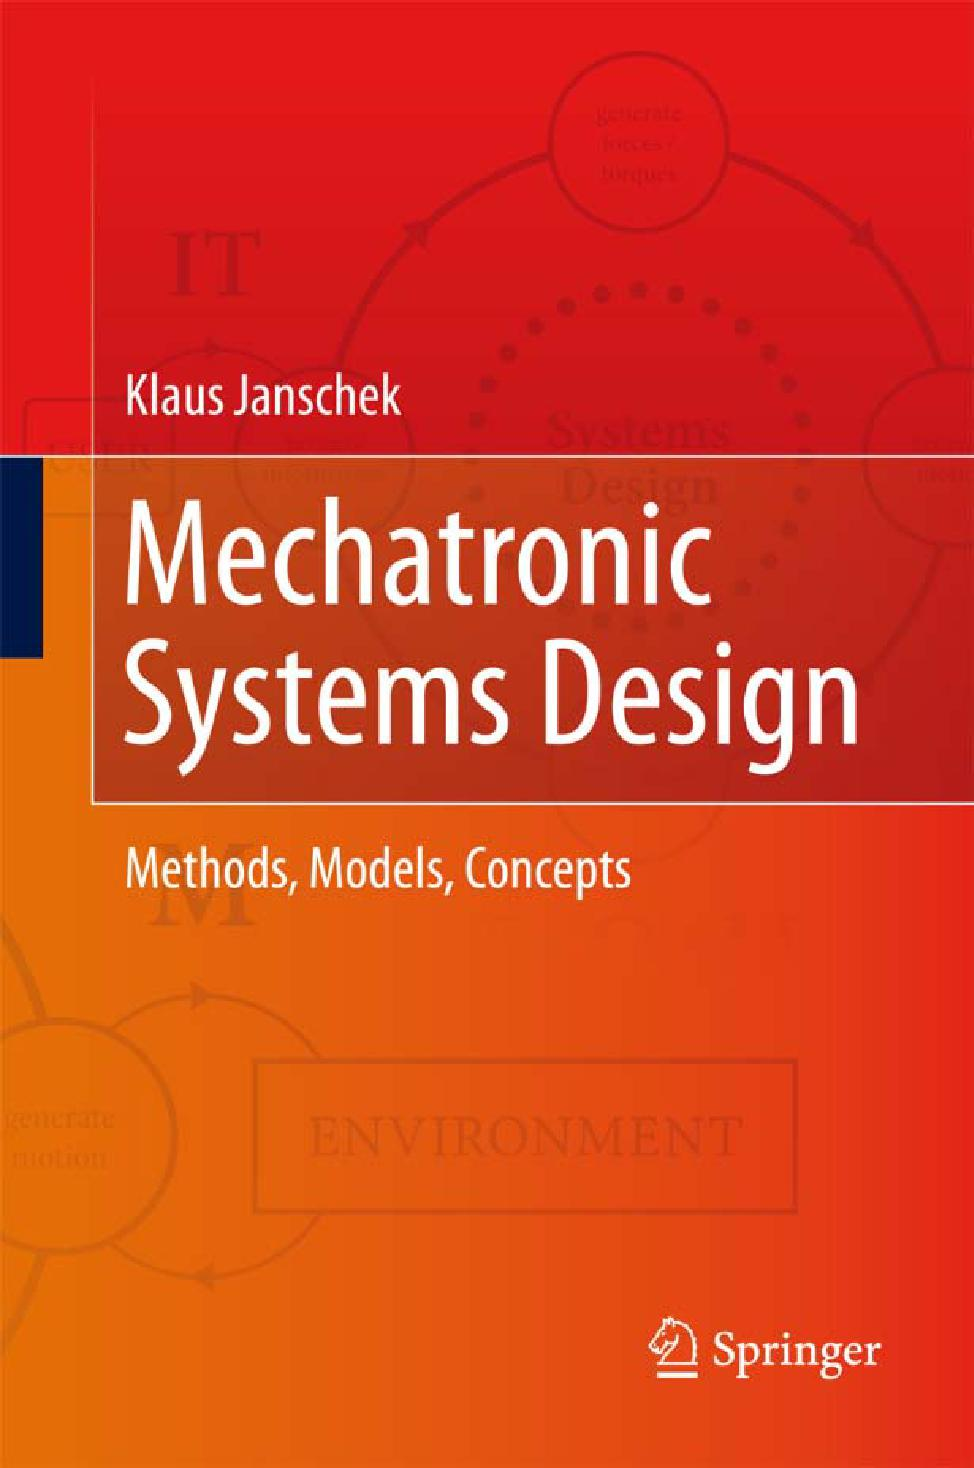 Mechatronic Systems Design: Methods, Models, Concepts